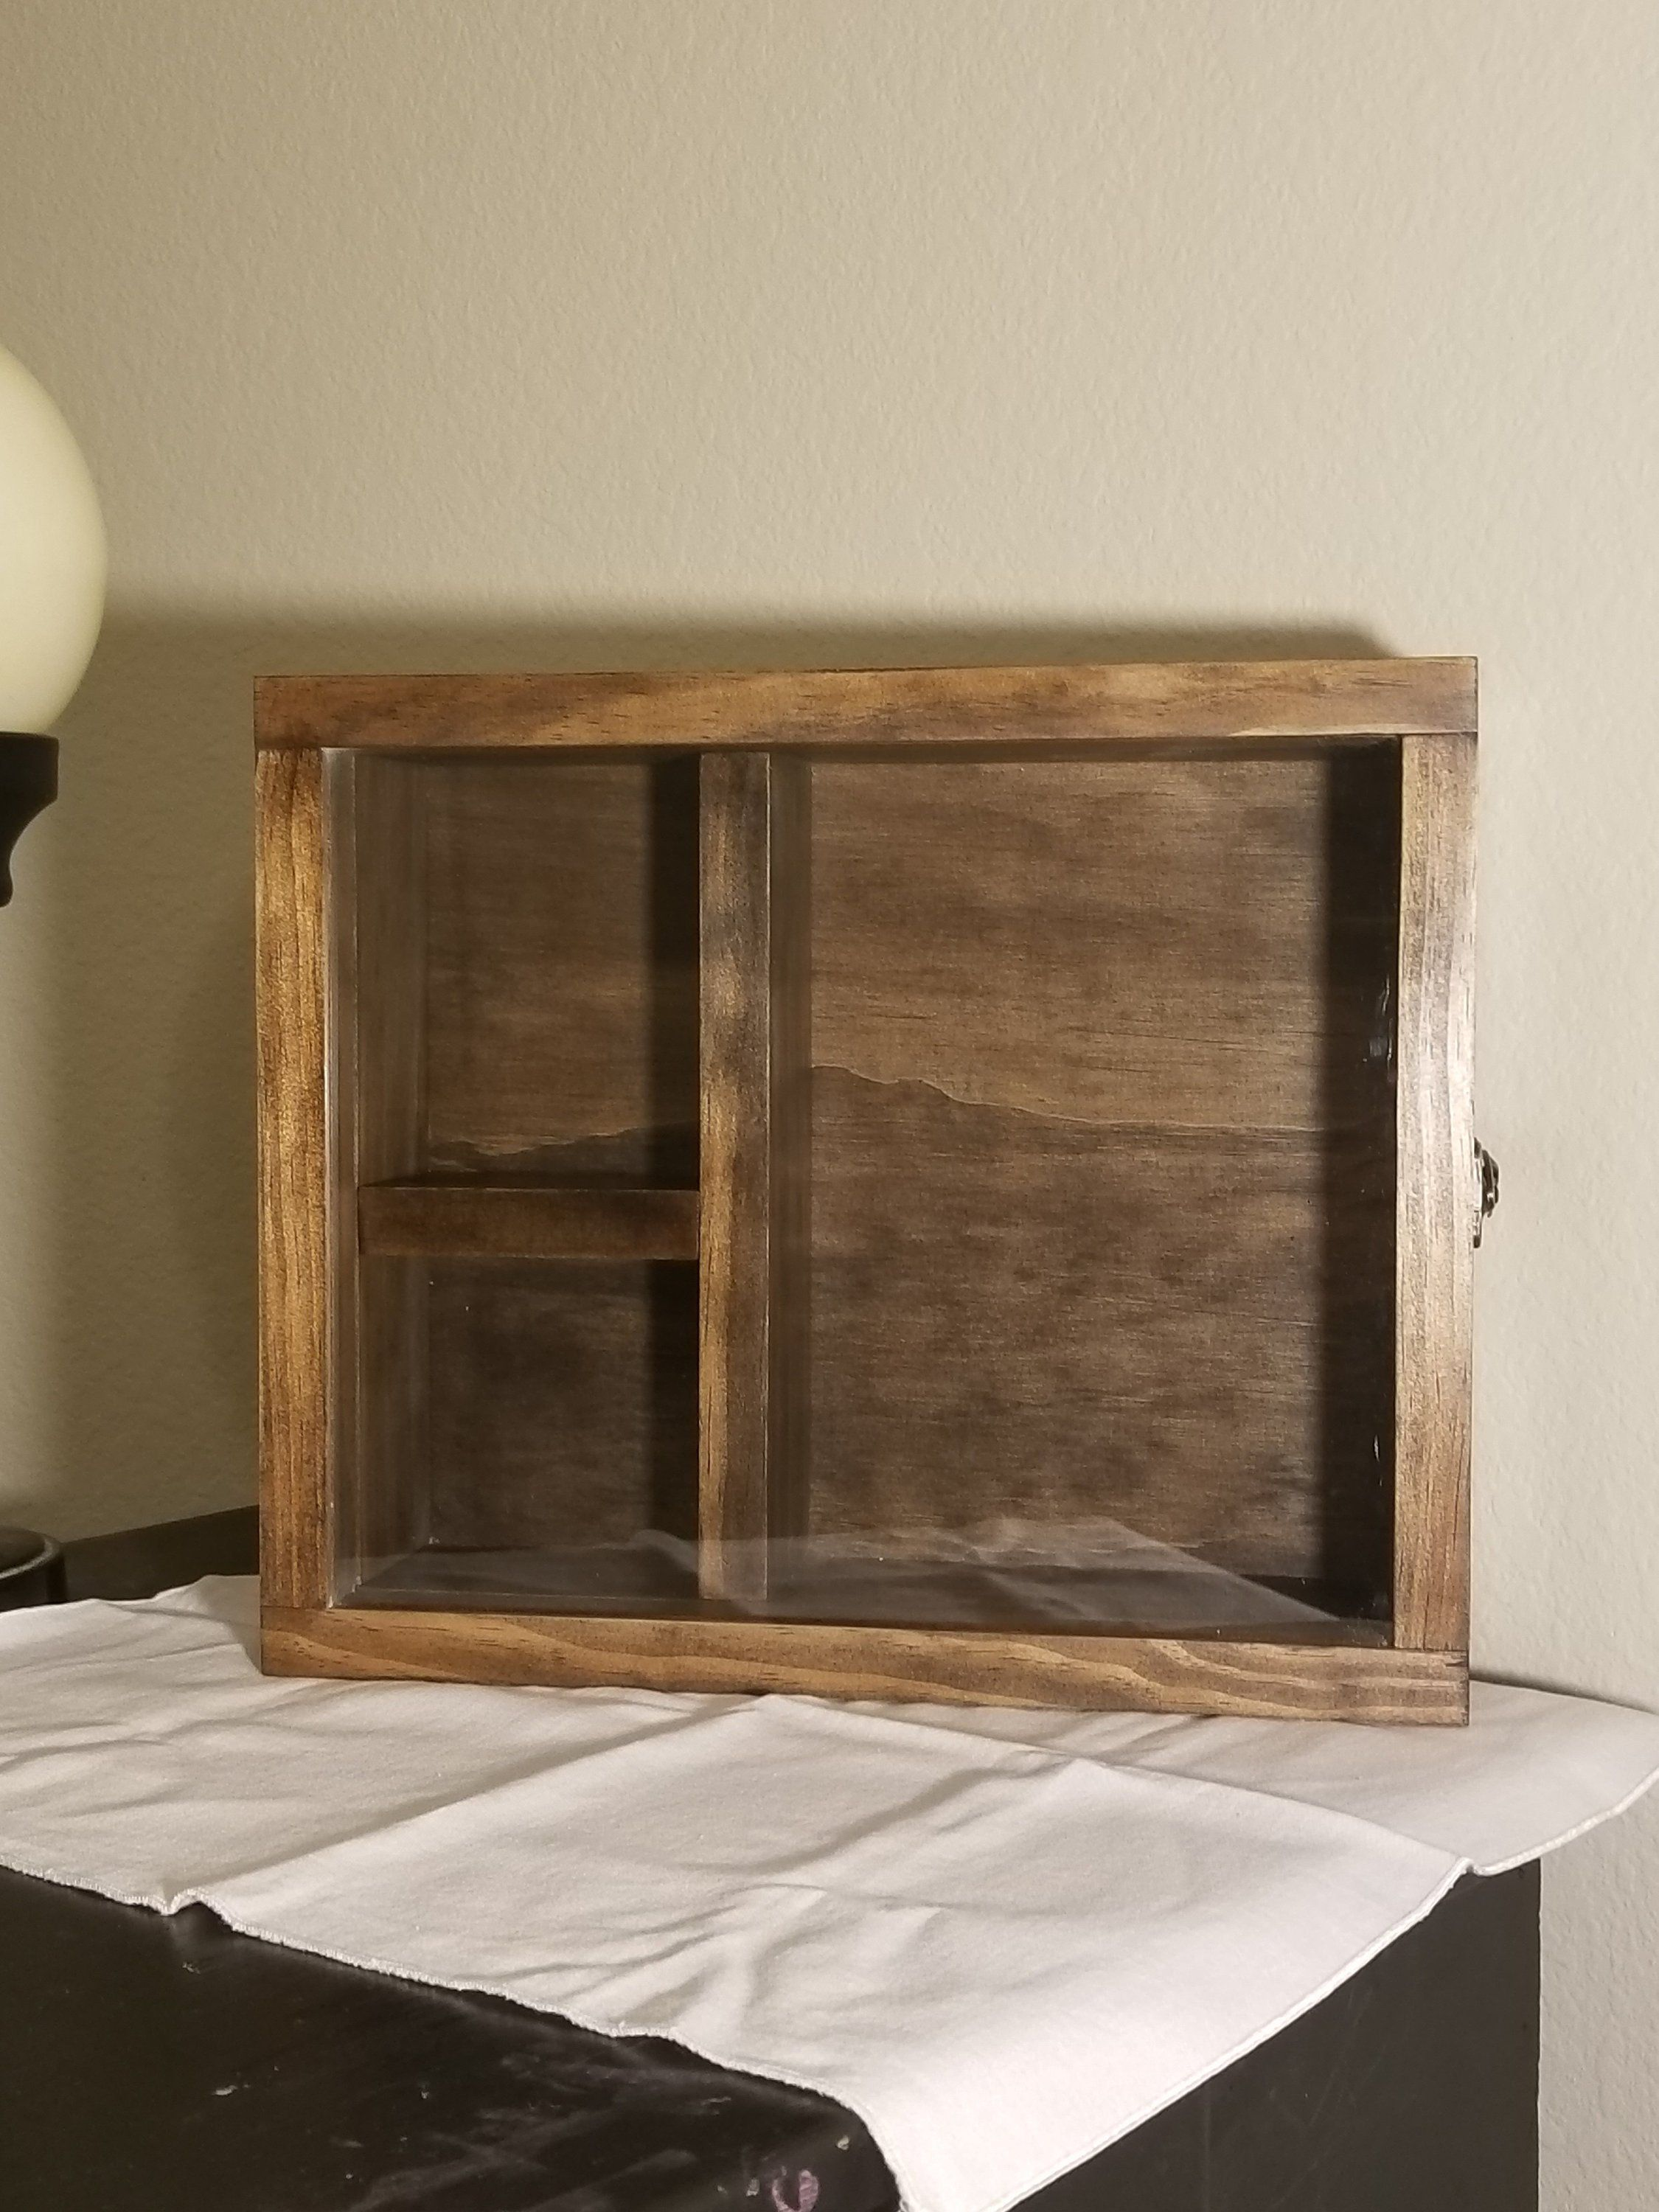 12 1 2 X 10 1 2 X 3 1 4 Wooden Shadow Box Display Case 3 Etsy Wooden Shadow Box Shadow Box Display Case Wood Shadow Box